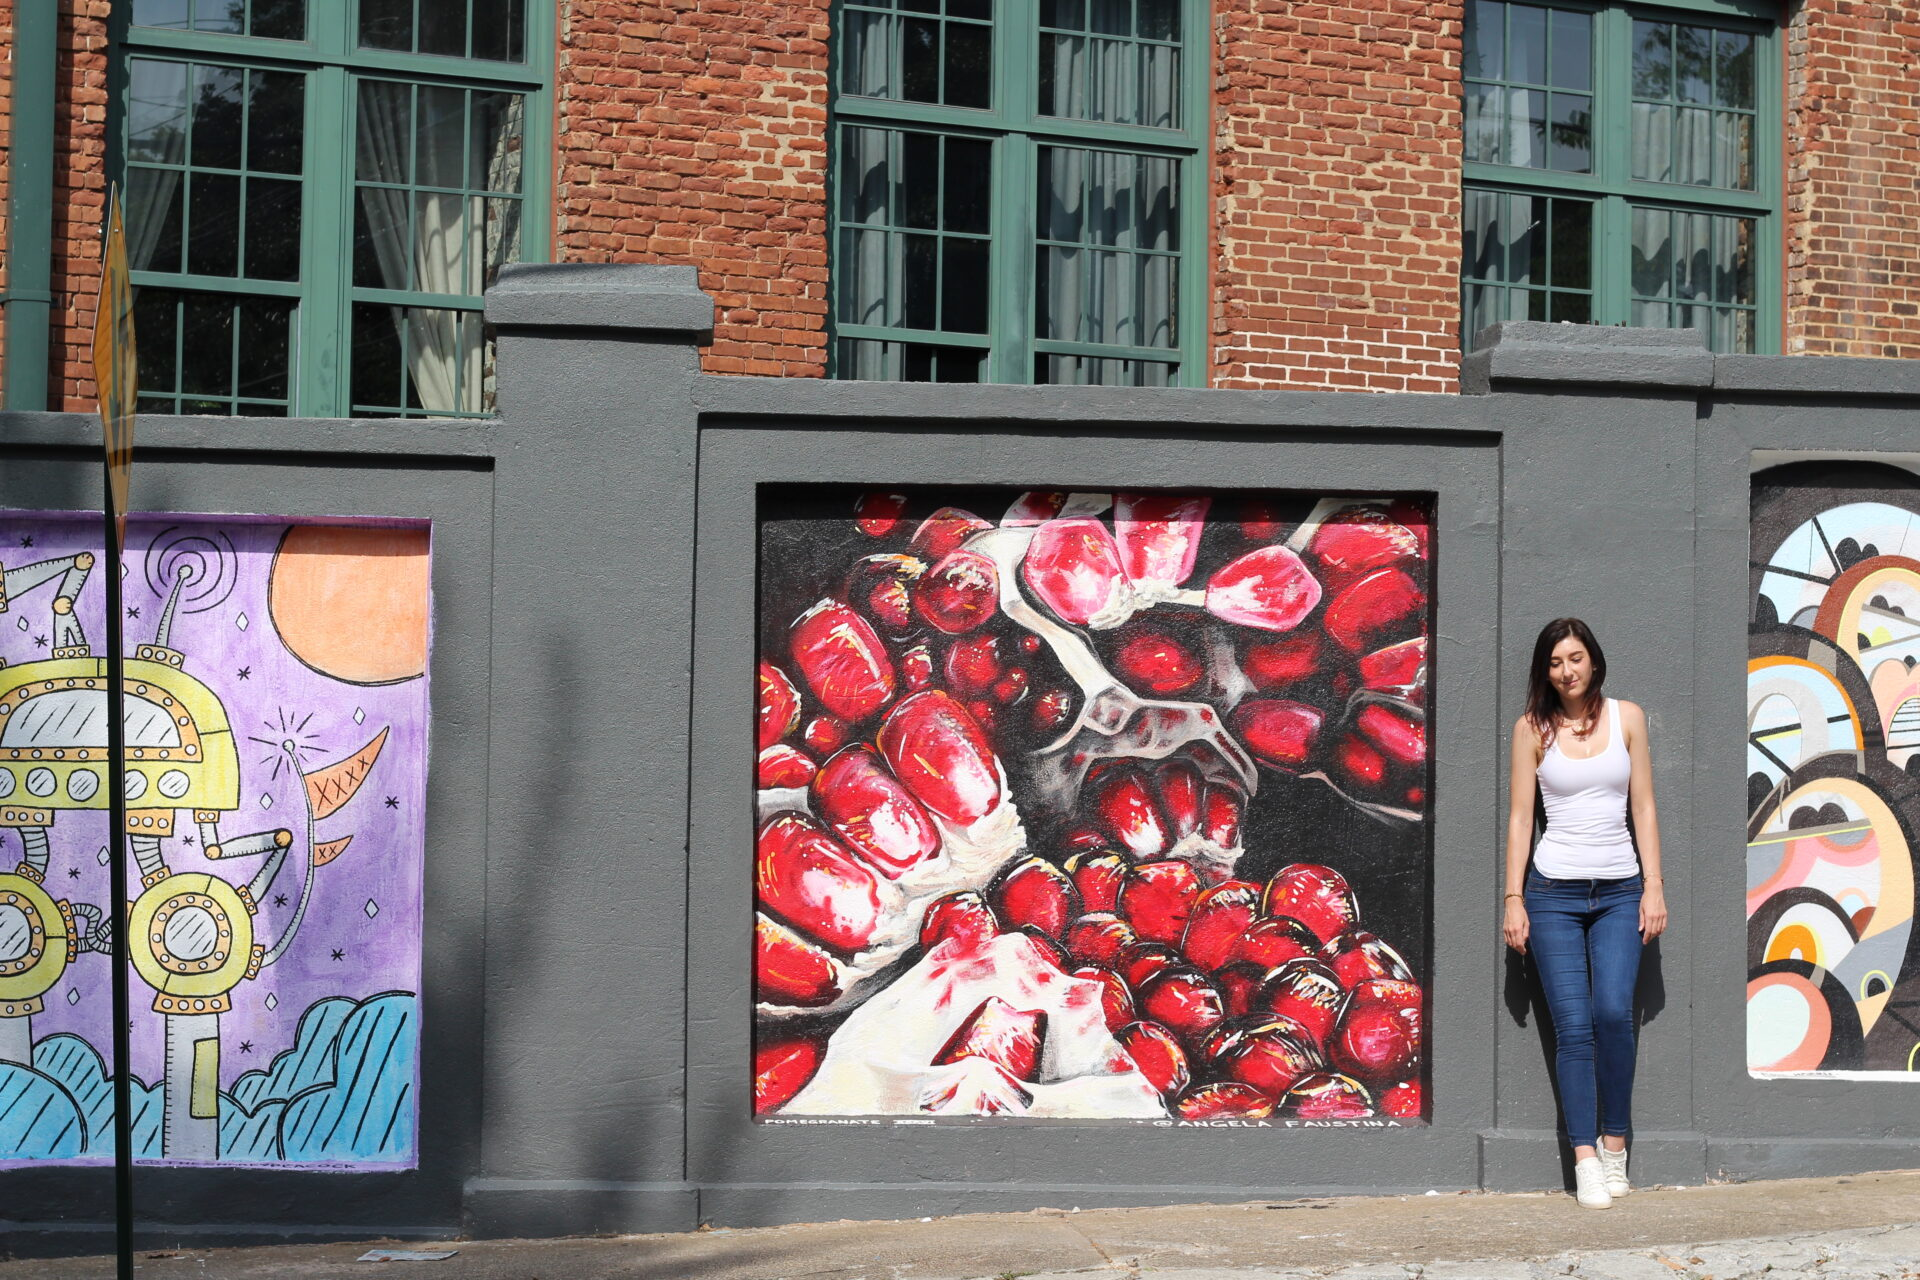 Angela Faustina with her pomegranate painting at the Stacks Squares mural public art project in Cabbagetown, Atlanta